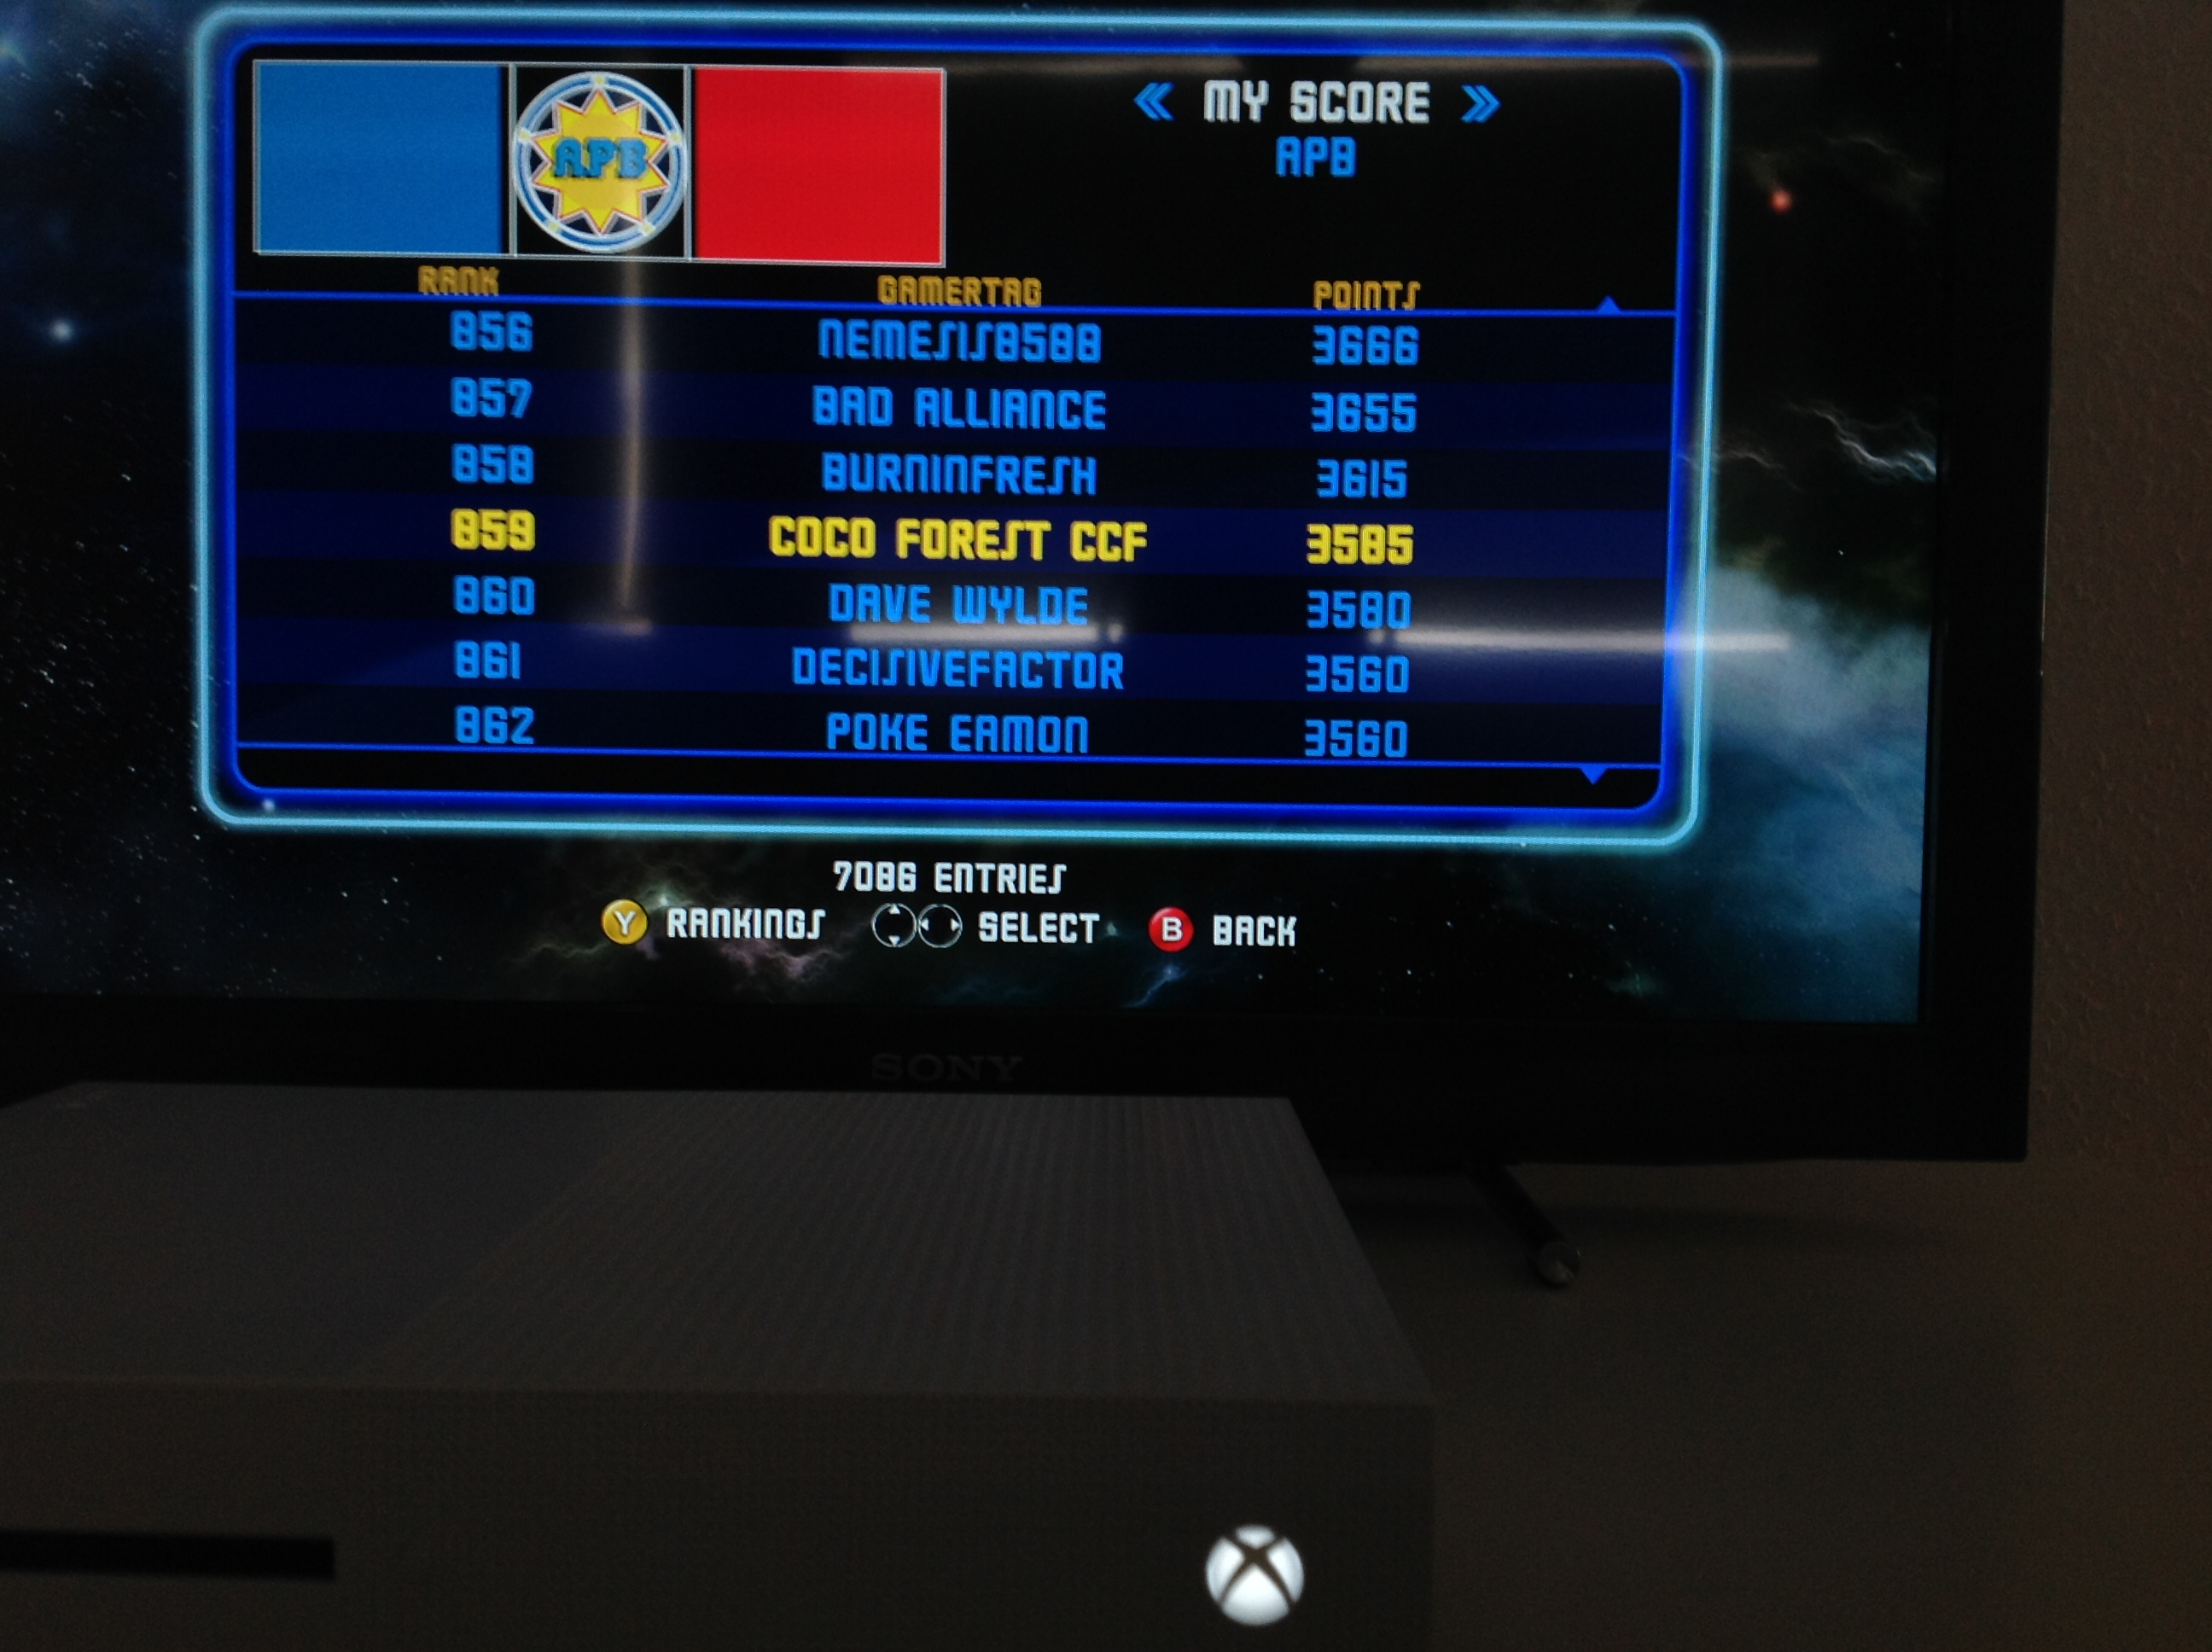 CoCoForest: Midway Arcade Origins: APB (Xbox 360) 3,585 points on 2019-06-01 04:24:21